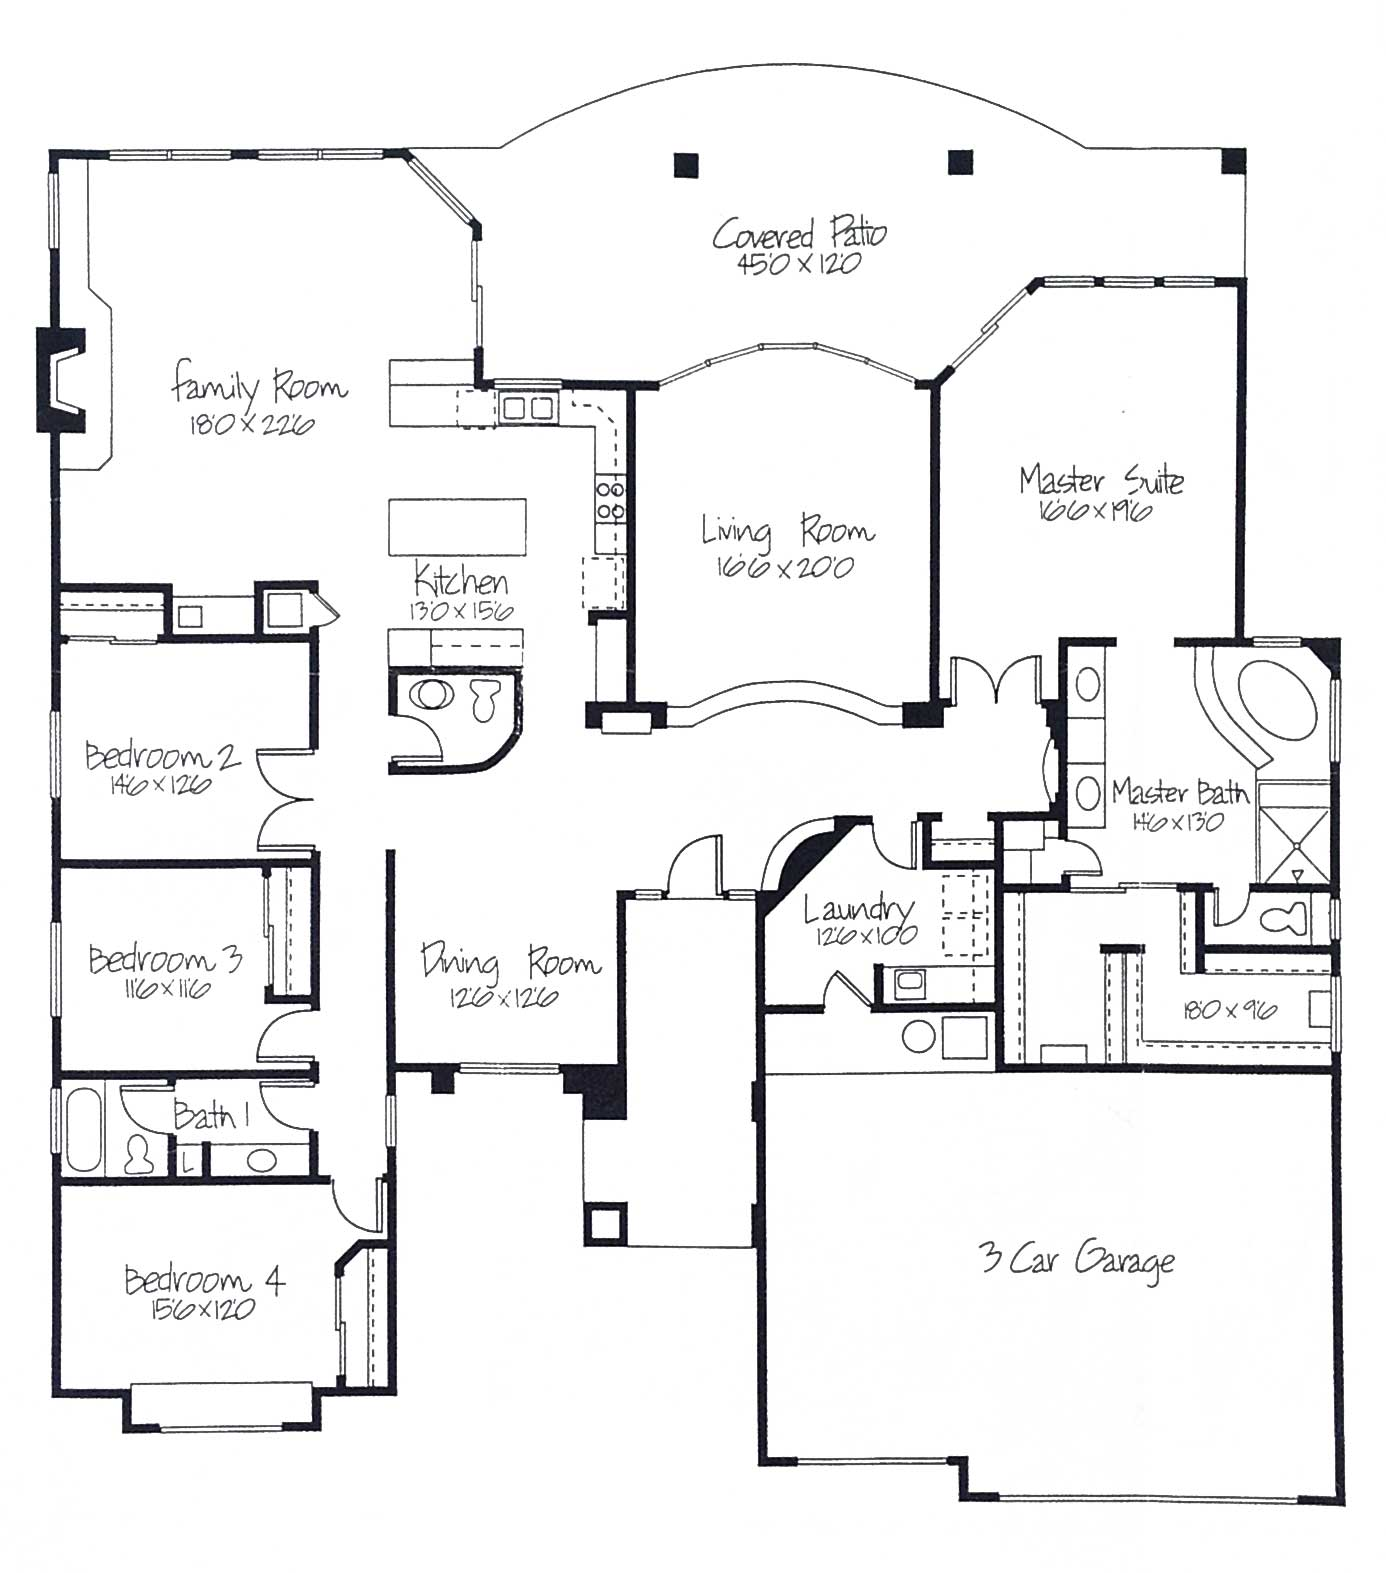 fun family room designs wiring diagram database. Black Bedroom Furniture Sets. Home Design Ideas